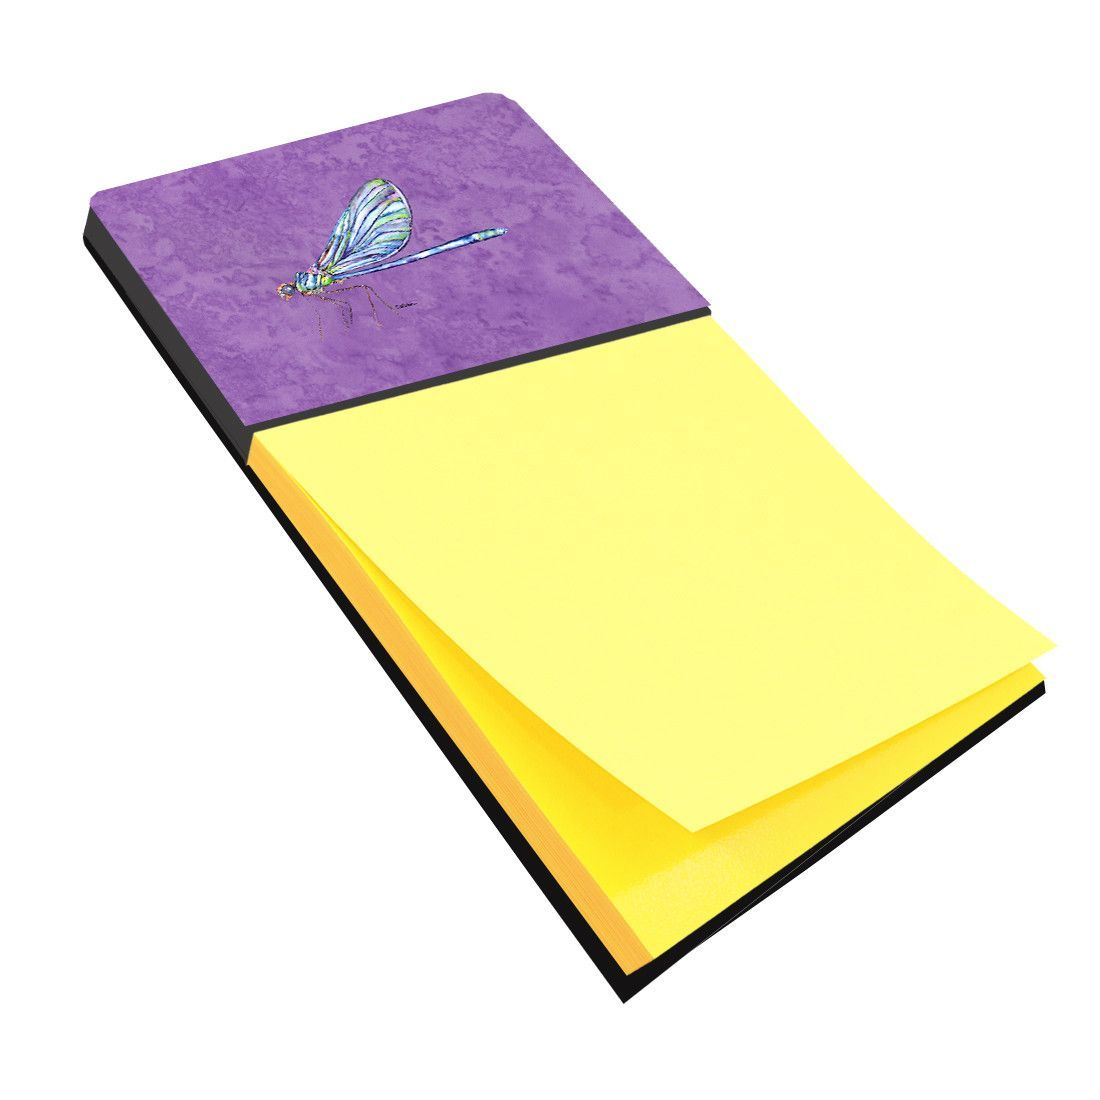 Dragonfly on Purple Refiillable Sticky Note Holder or Postit Note Dispenser 8865SN